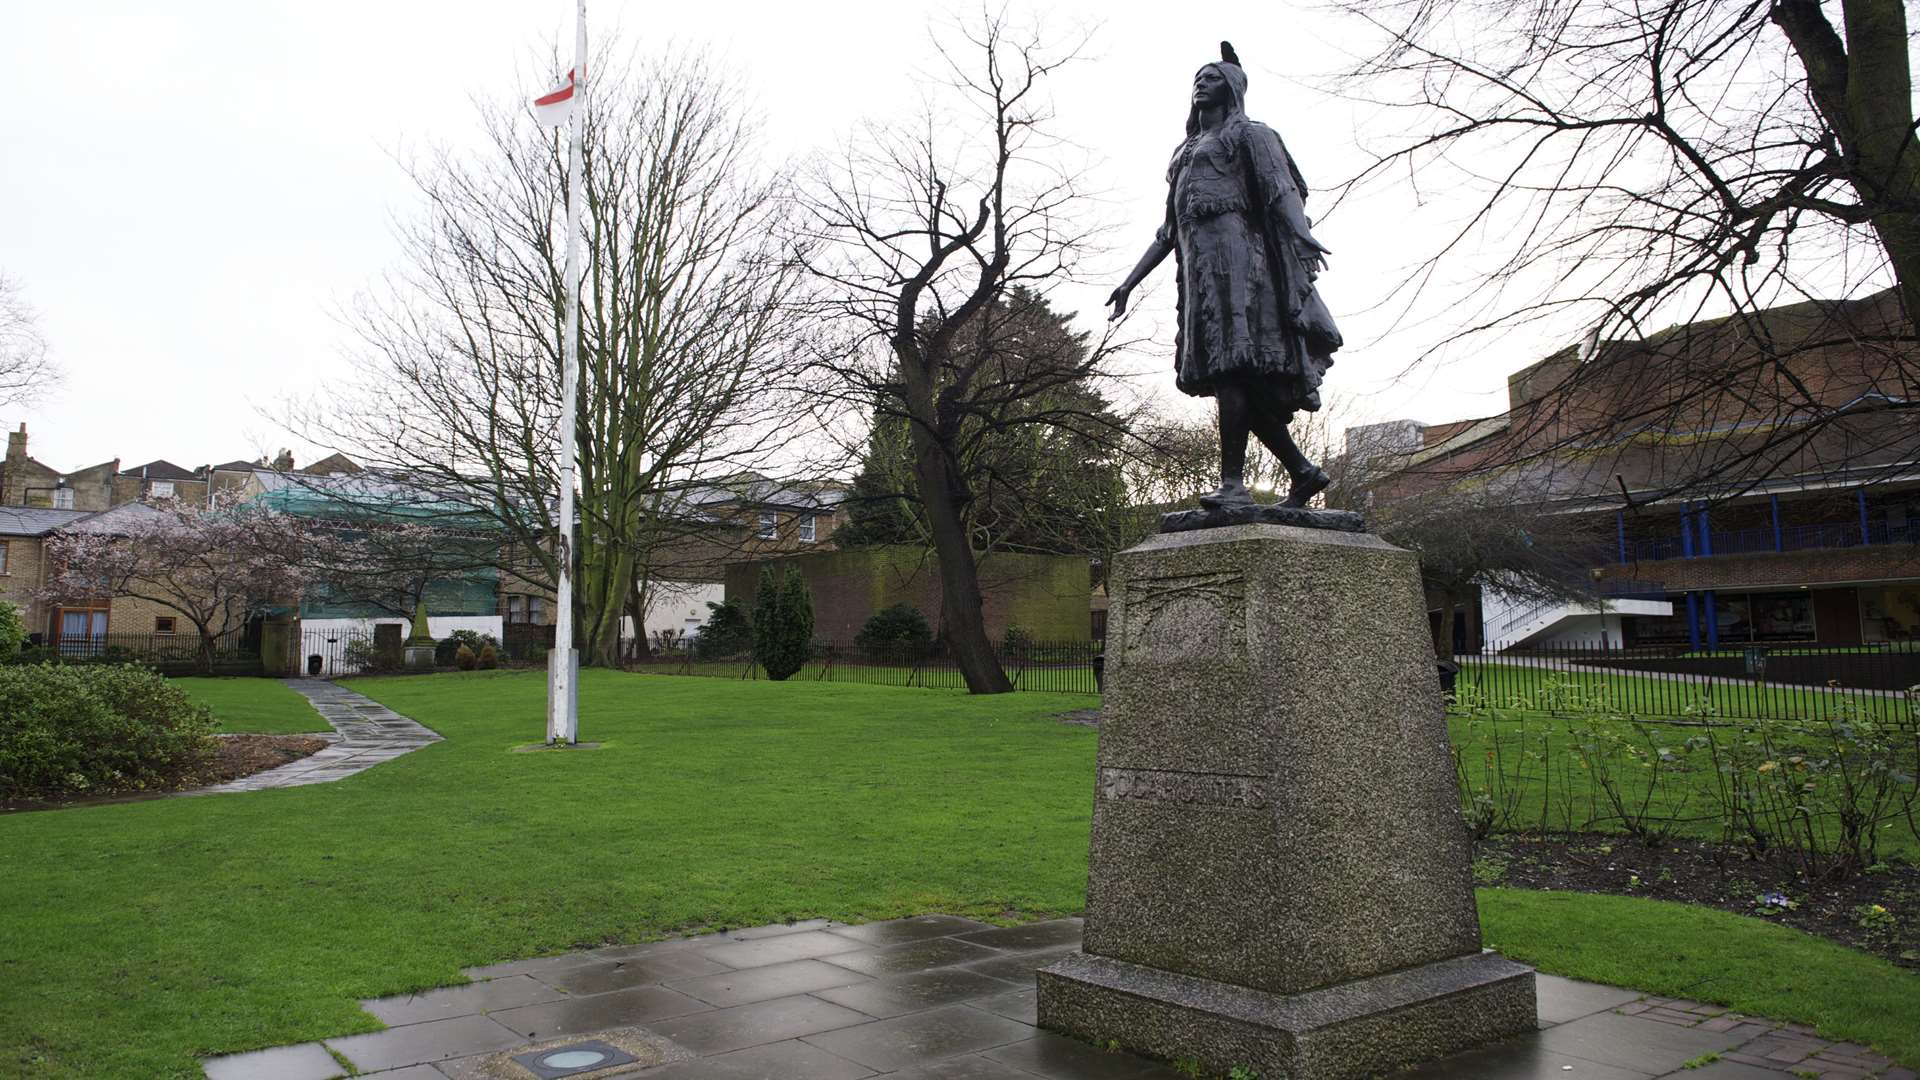 The statue of Native American princess, Pocahontas, in the grounds of St George's Church, Gravesend